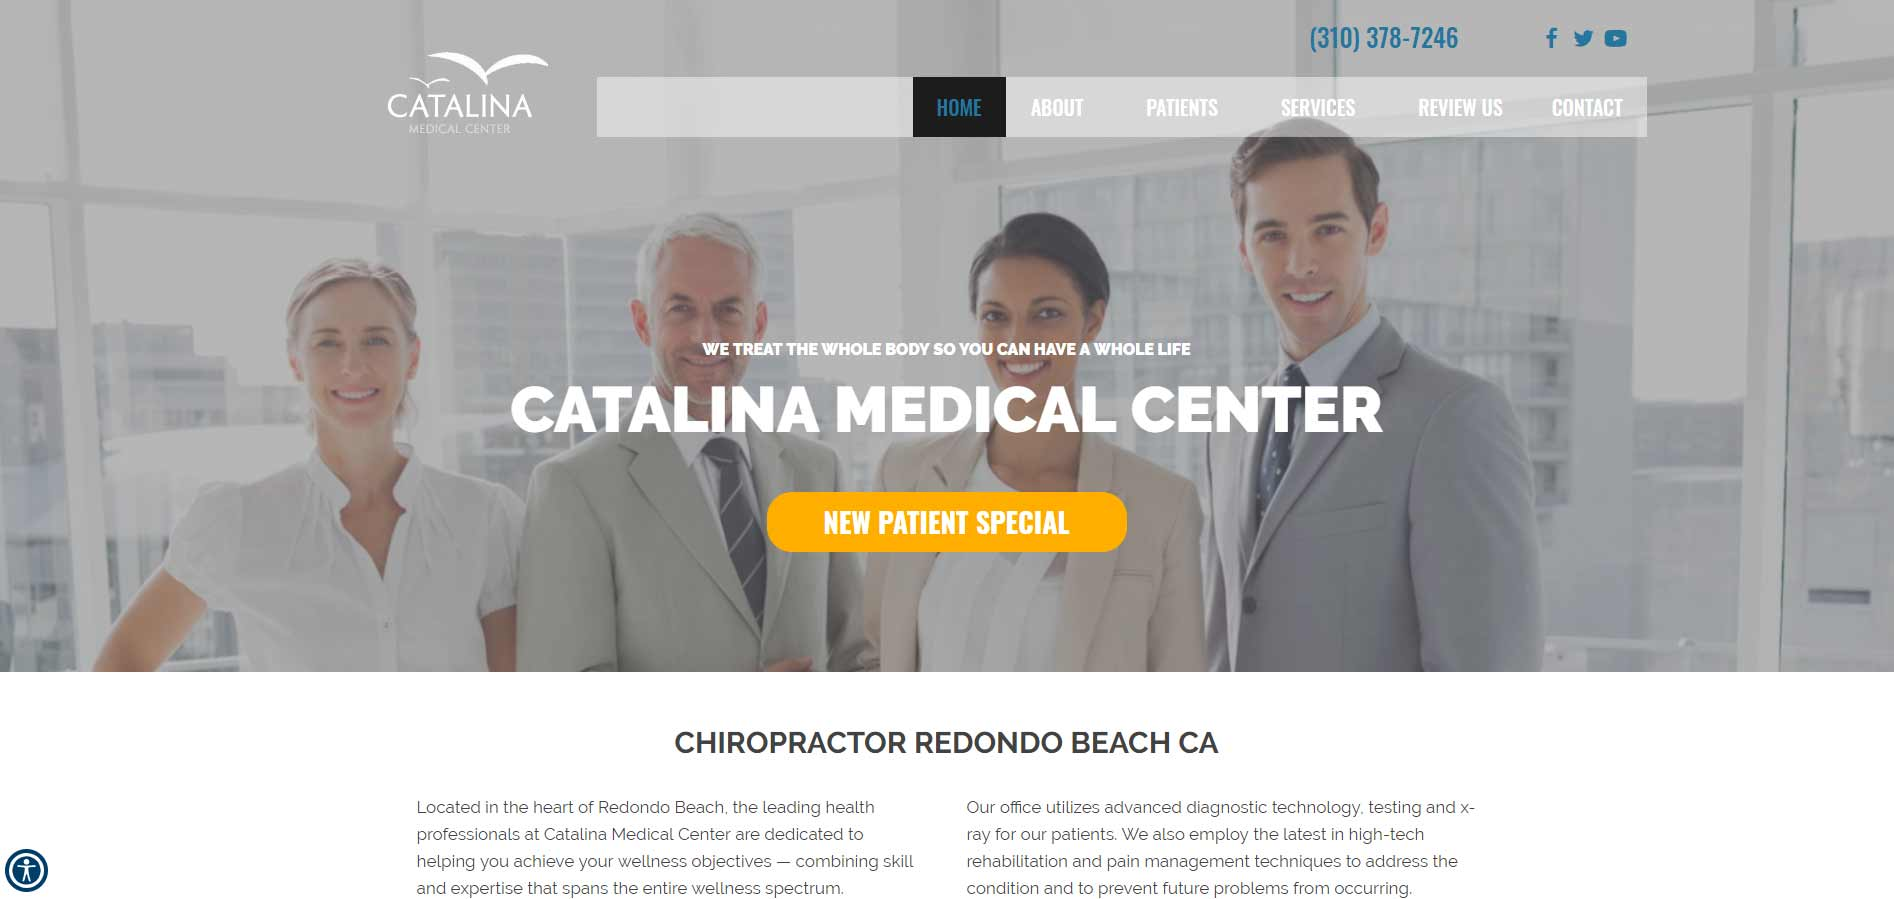 Chiropractor Redondo Beach CA Catalina Medical Center